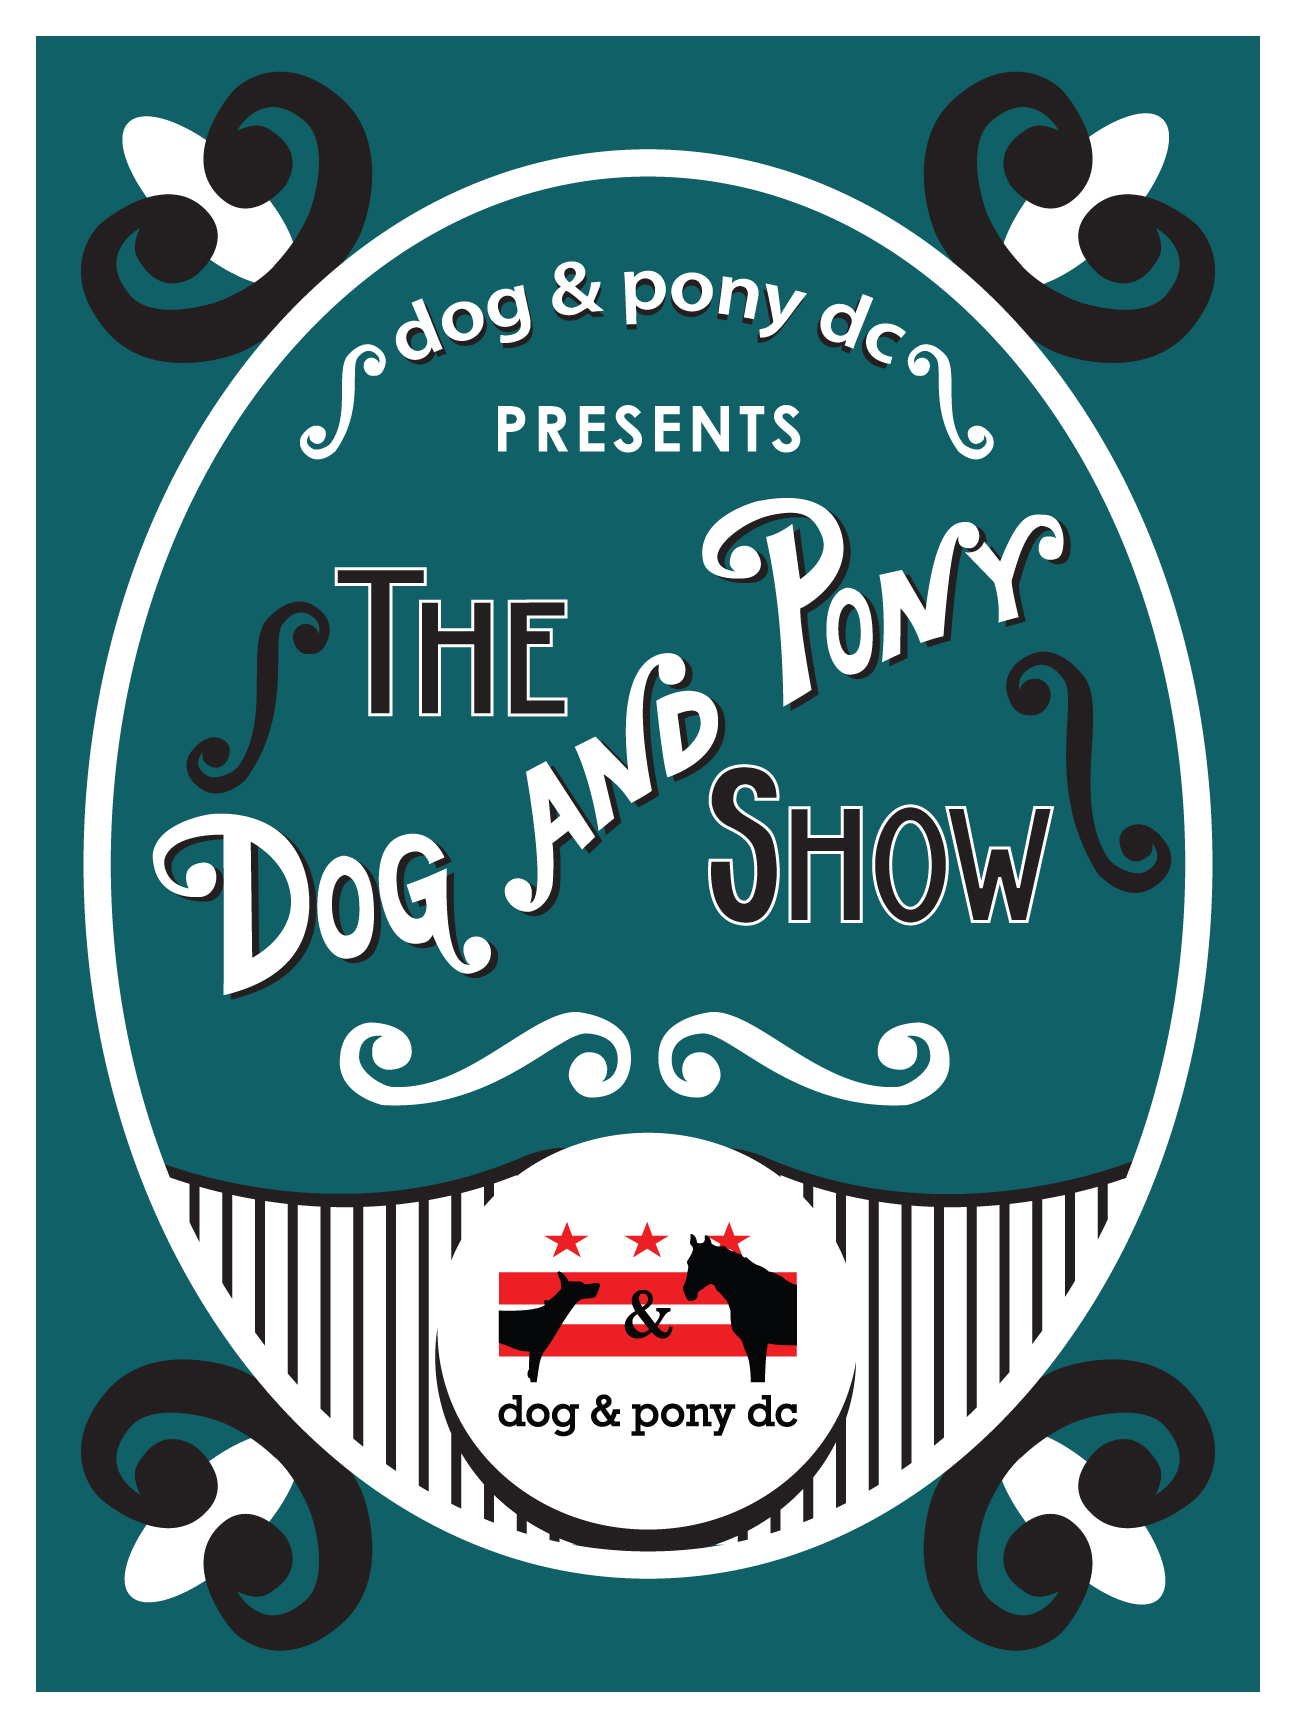 THE DOG AND PONY SHOW